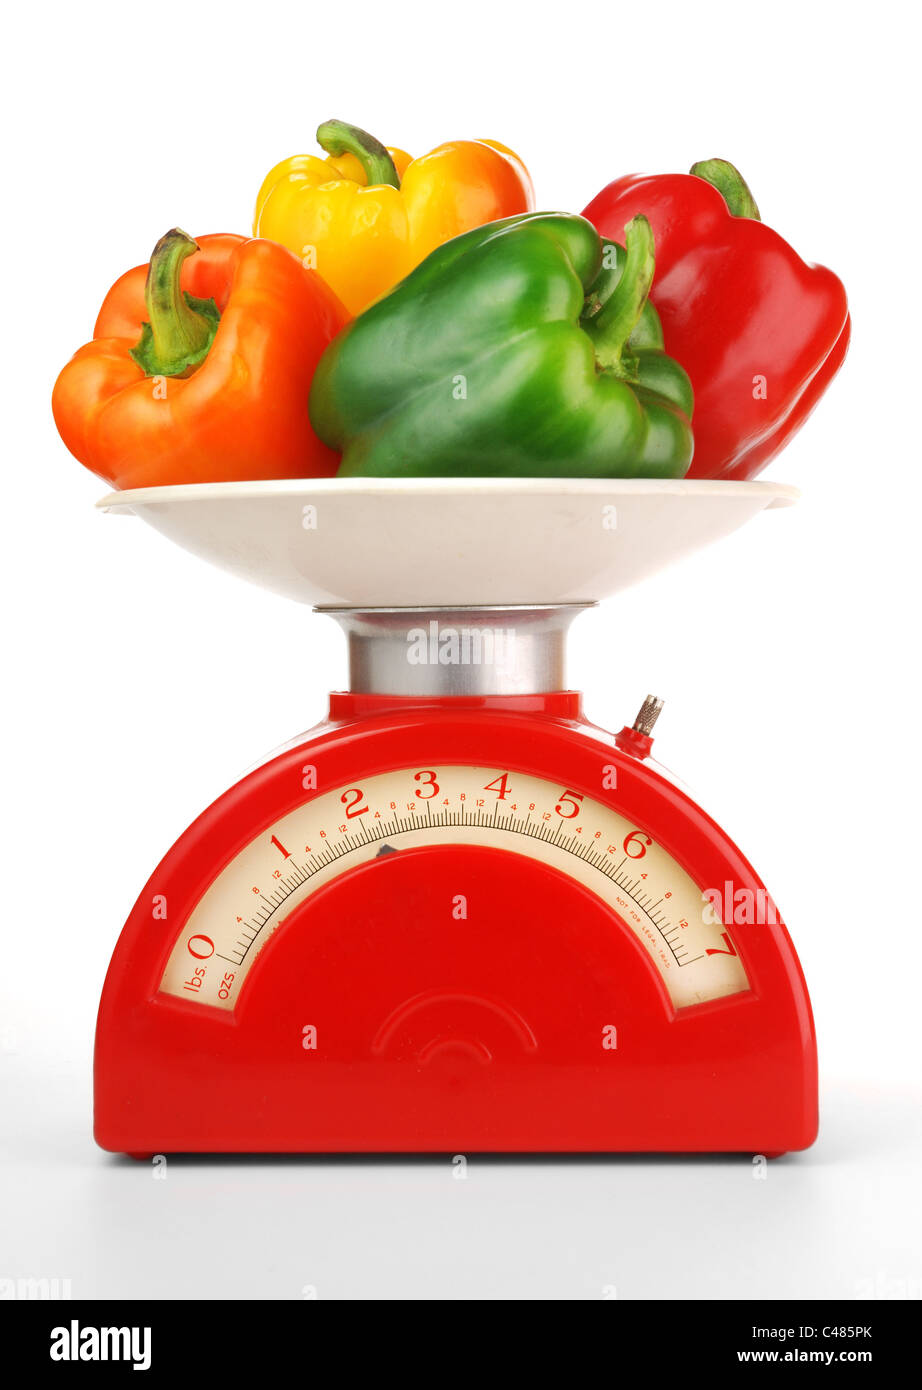 red, orange, yellow, green bell peppers on a vintage kitchen scale - Stock Image